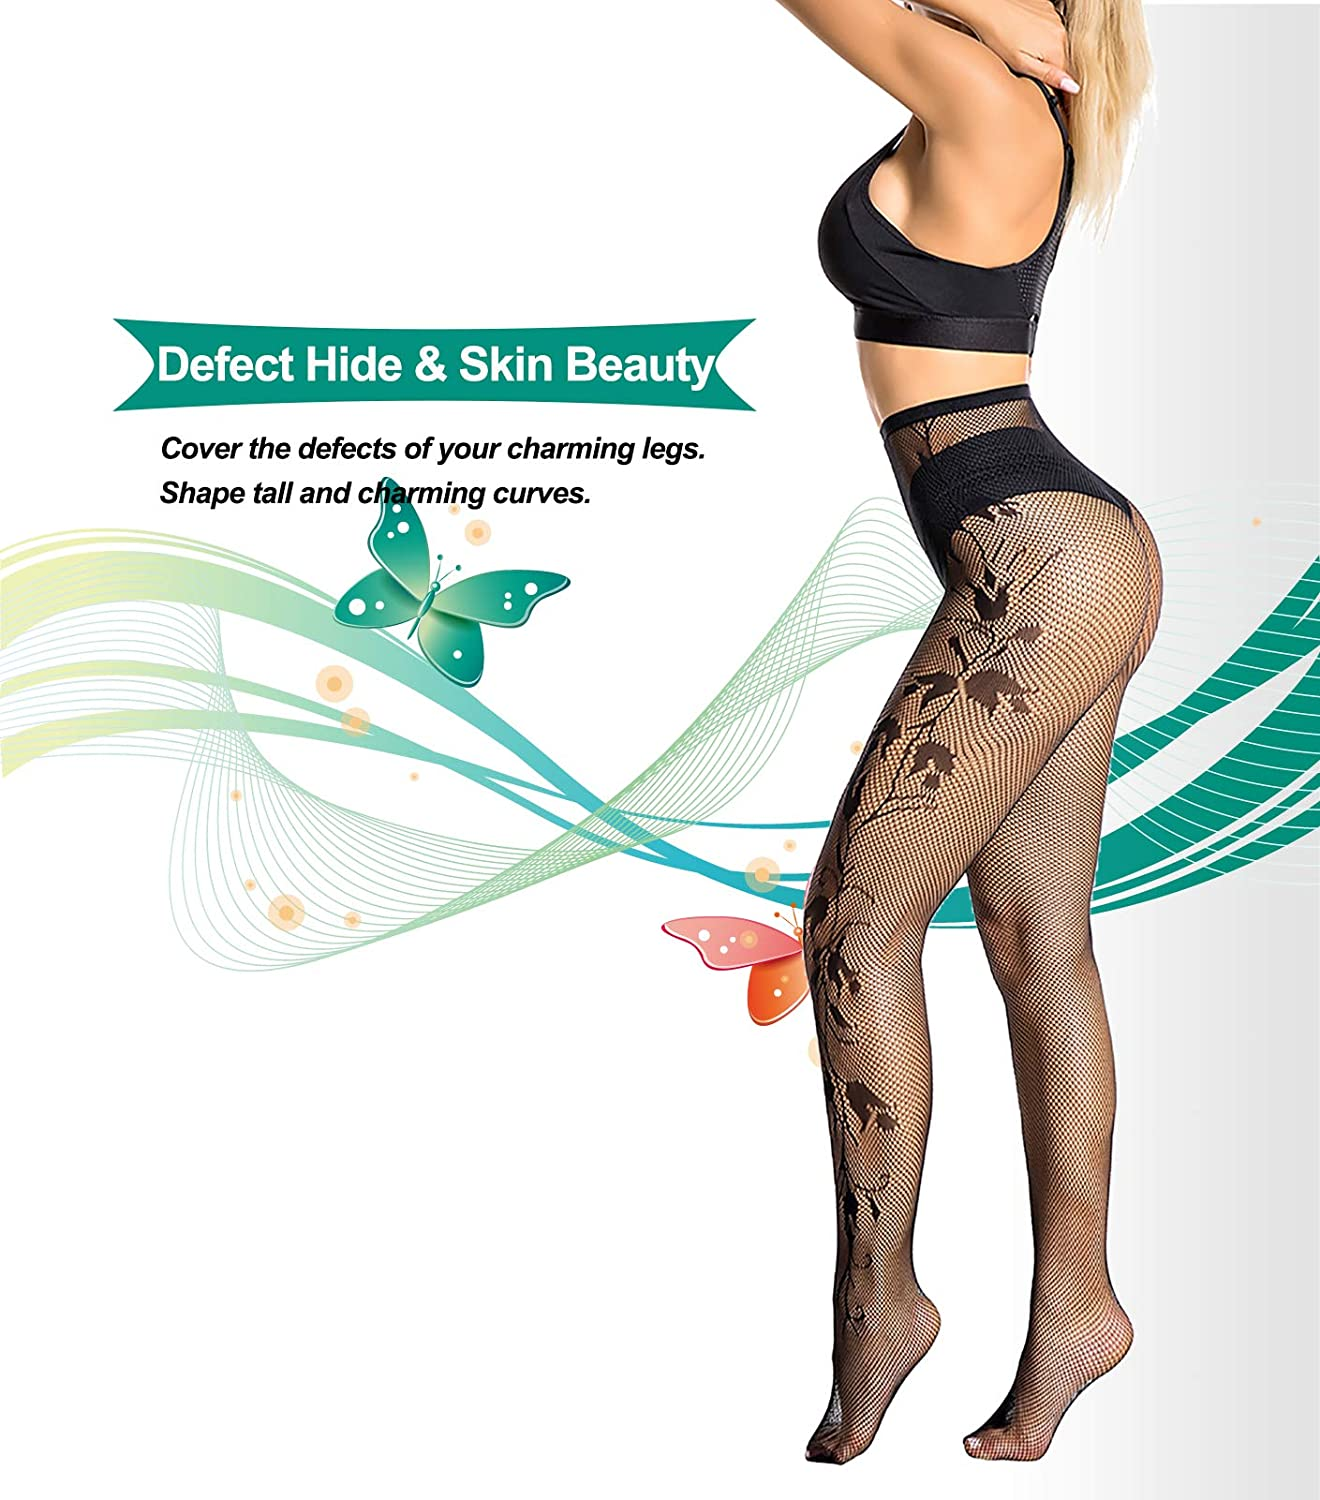 Jilicsany 4 pairs High Waist Sheer Tights Patterned Pantyhose for Women Control Top